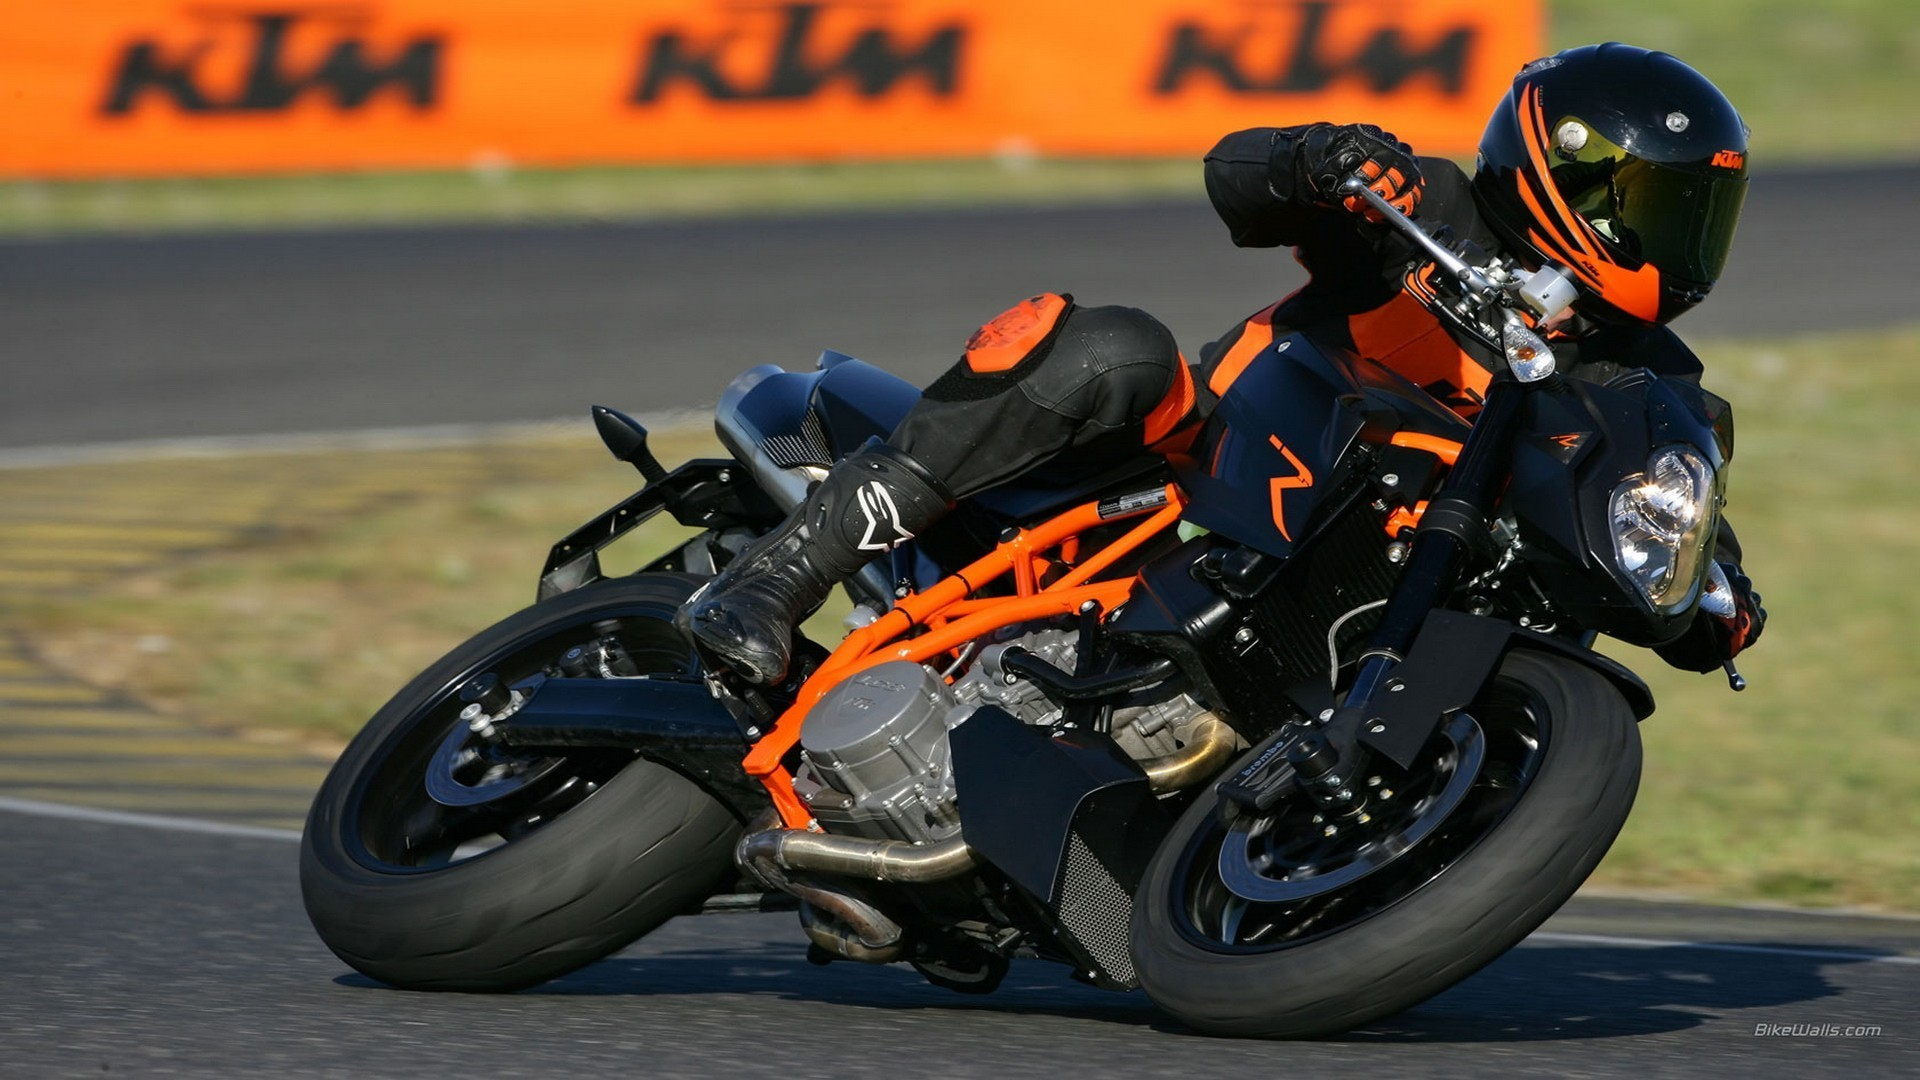 Res: 1920x1080, 2014 Ktm Duke Bike Page Wallpaper HQ Backgrounds HD wallpapers